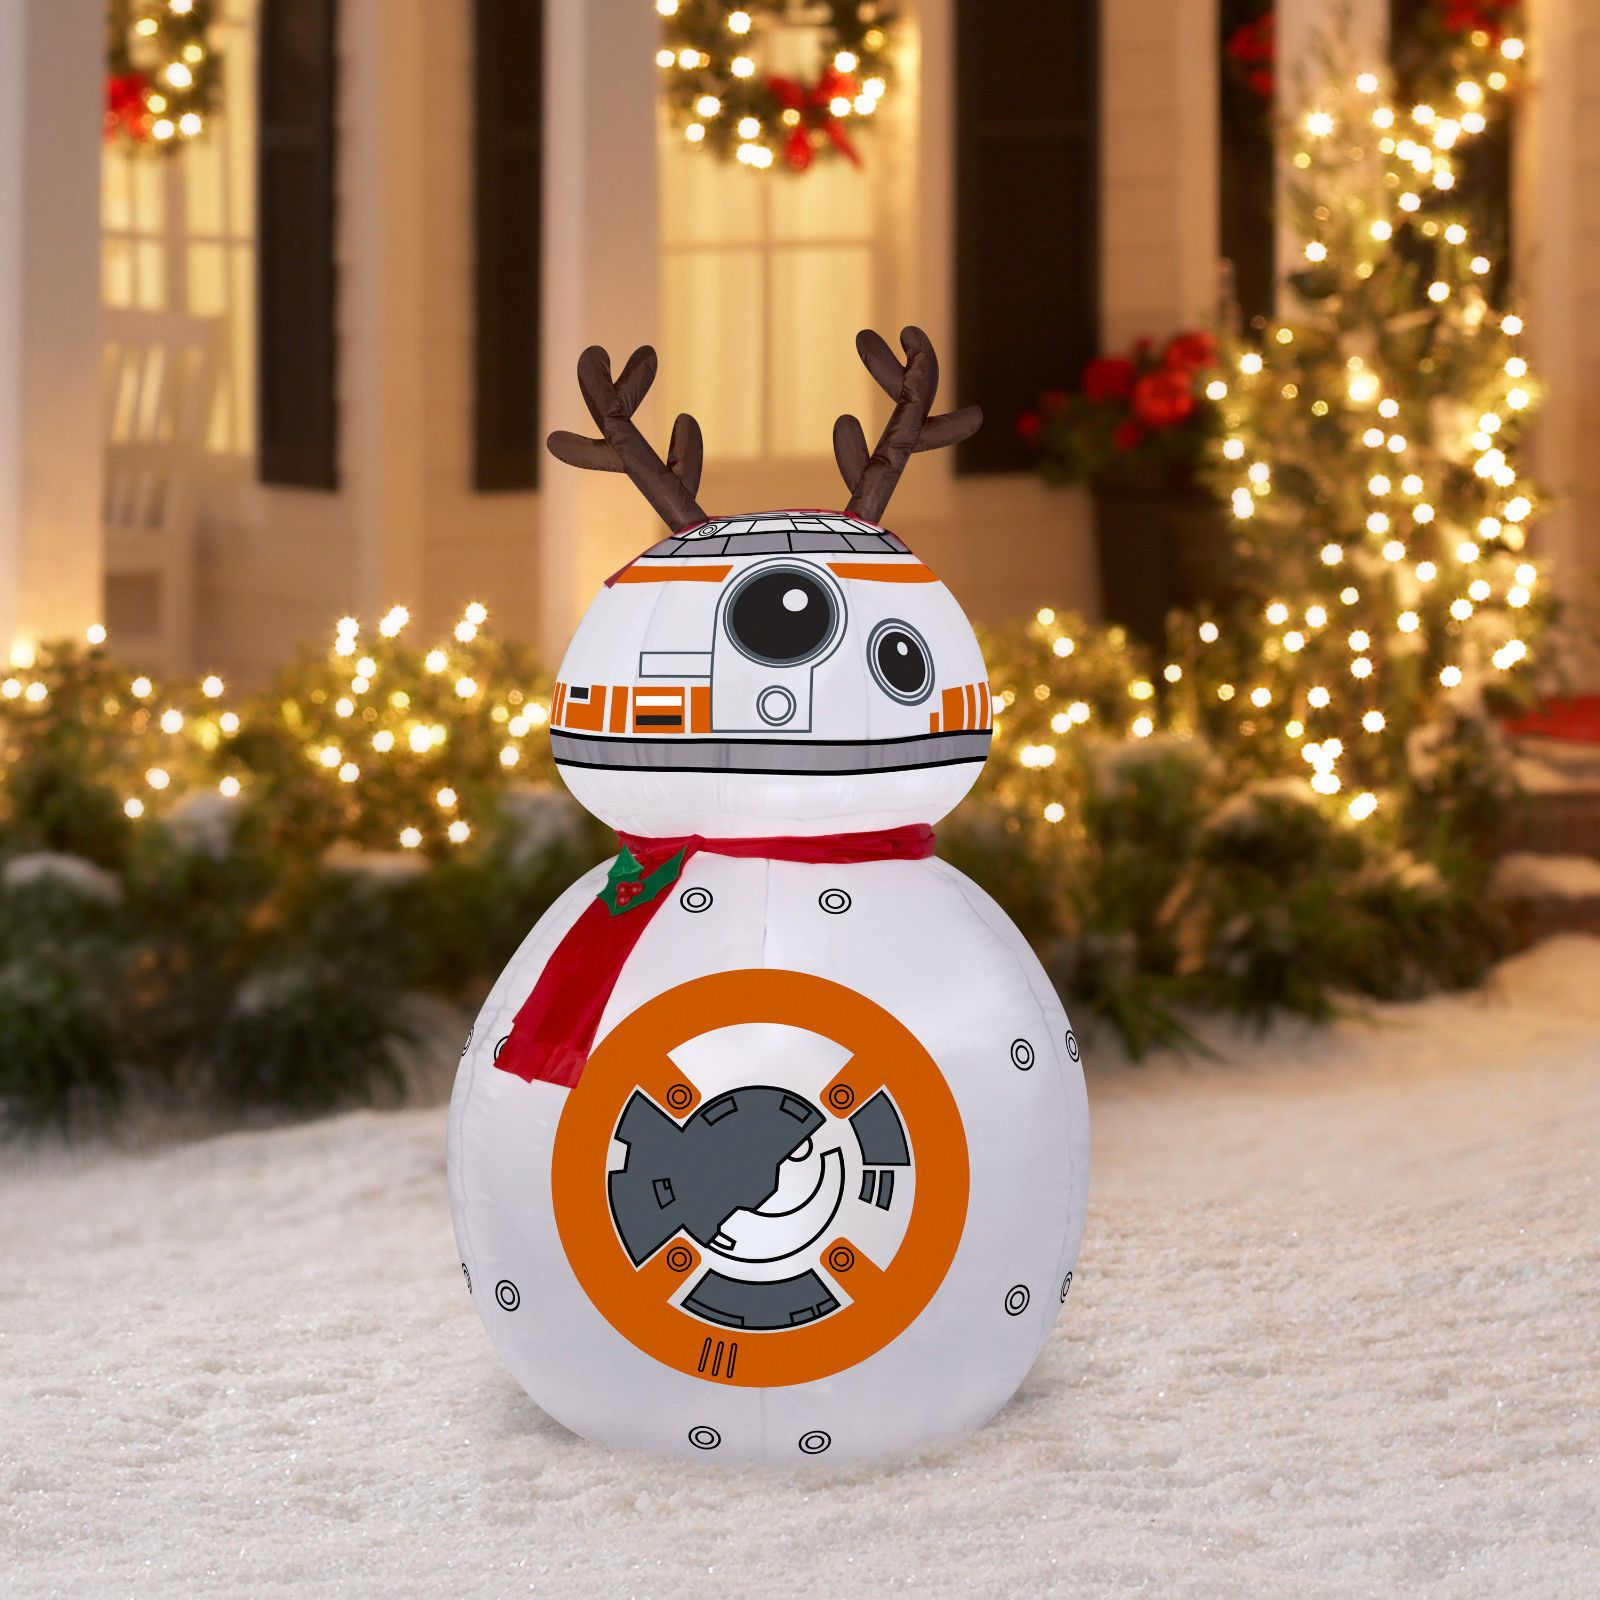 4ft Gemmy Christmas Airblown Inflatable Star Wars Bb 8 Reindeer Ears Holiday Star Wars Christmas Ornaments Star Wars Christmas Decorations Christmas Ornaments